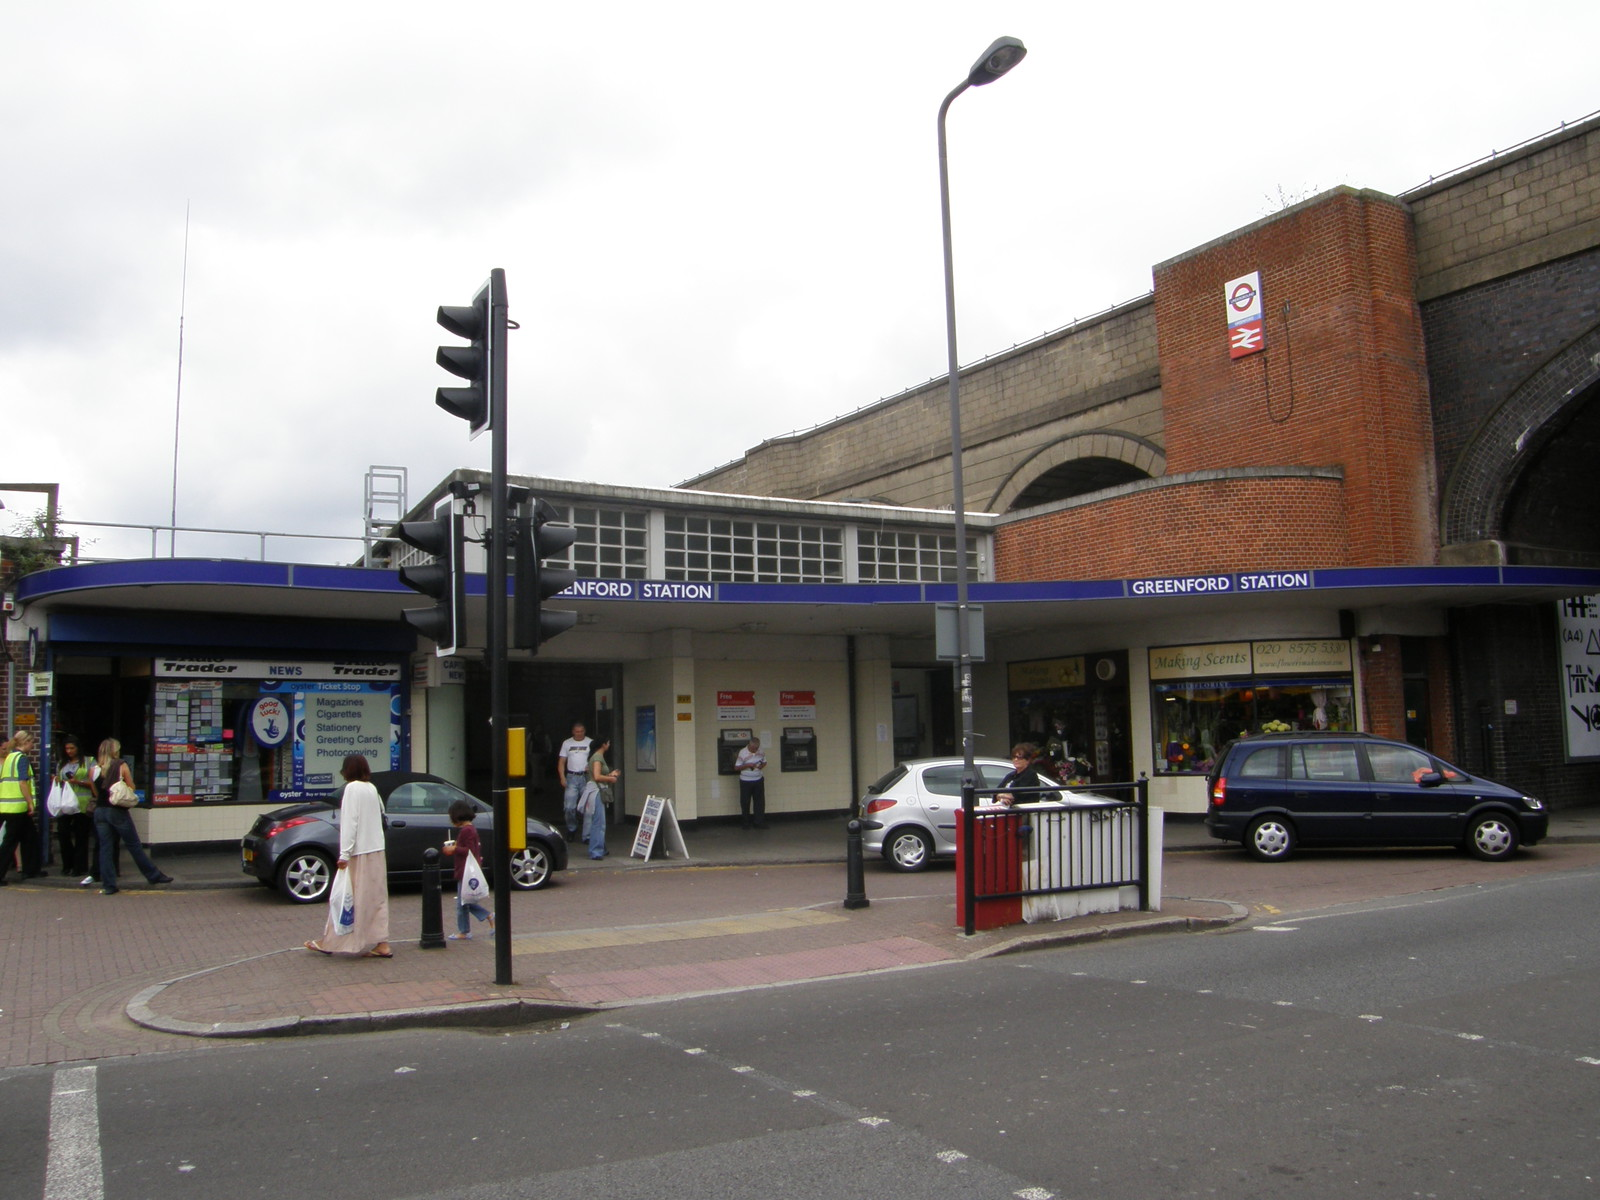 Greenford station